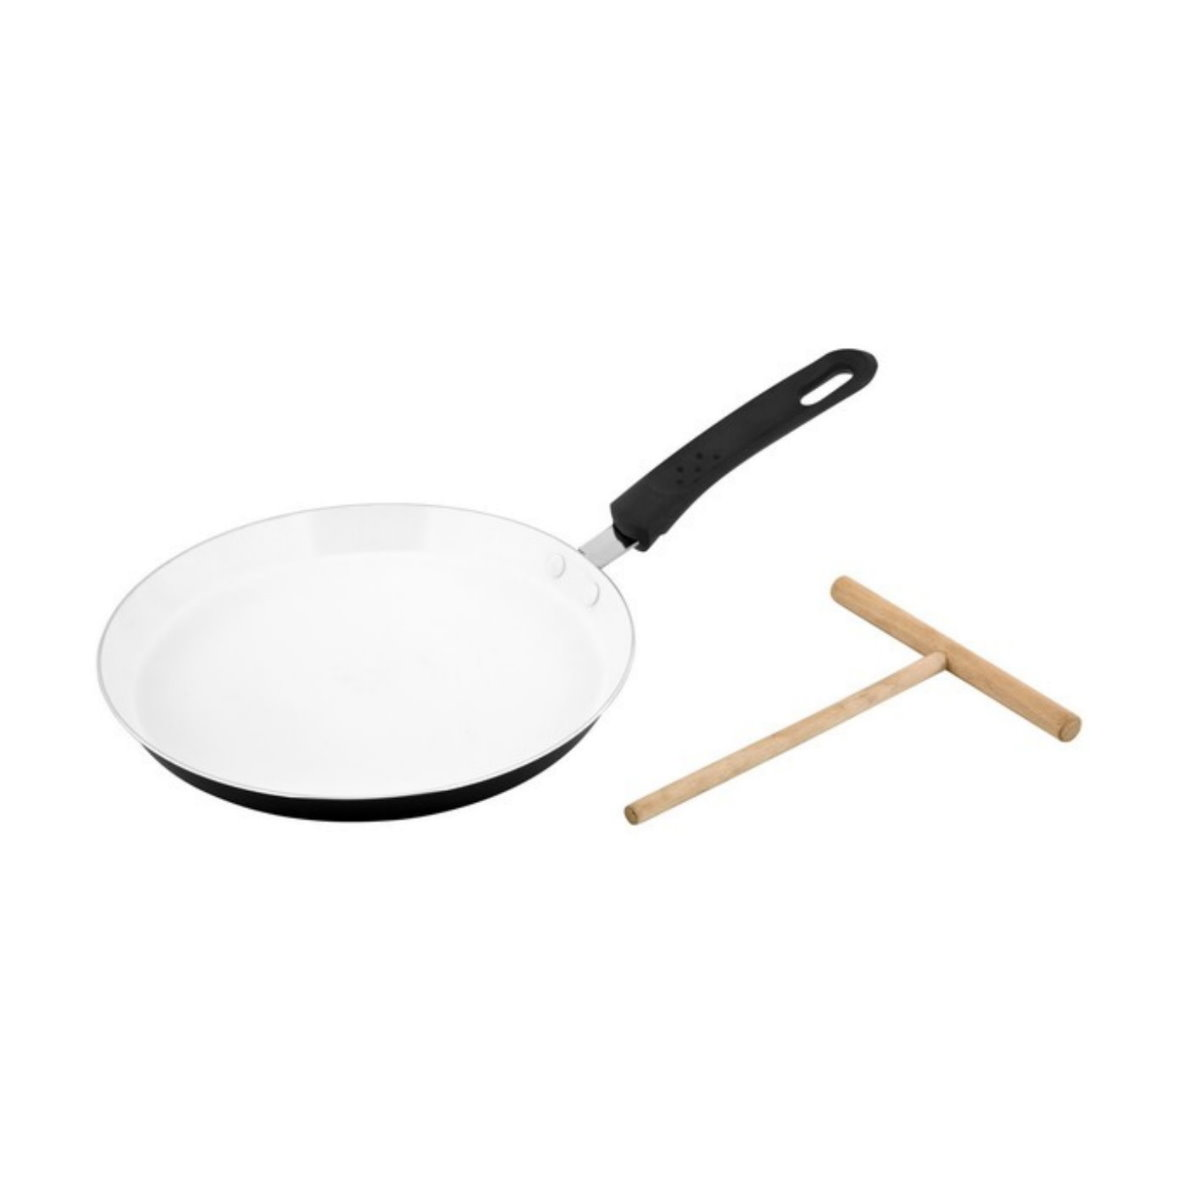 induction pancake crep crepes pan pancake pan pancake crepespfanne ebay. Black Bedroom Furniture Sets. Home Design Ideas